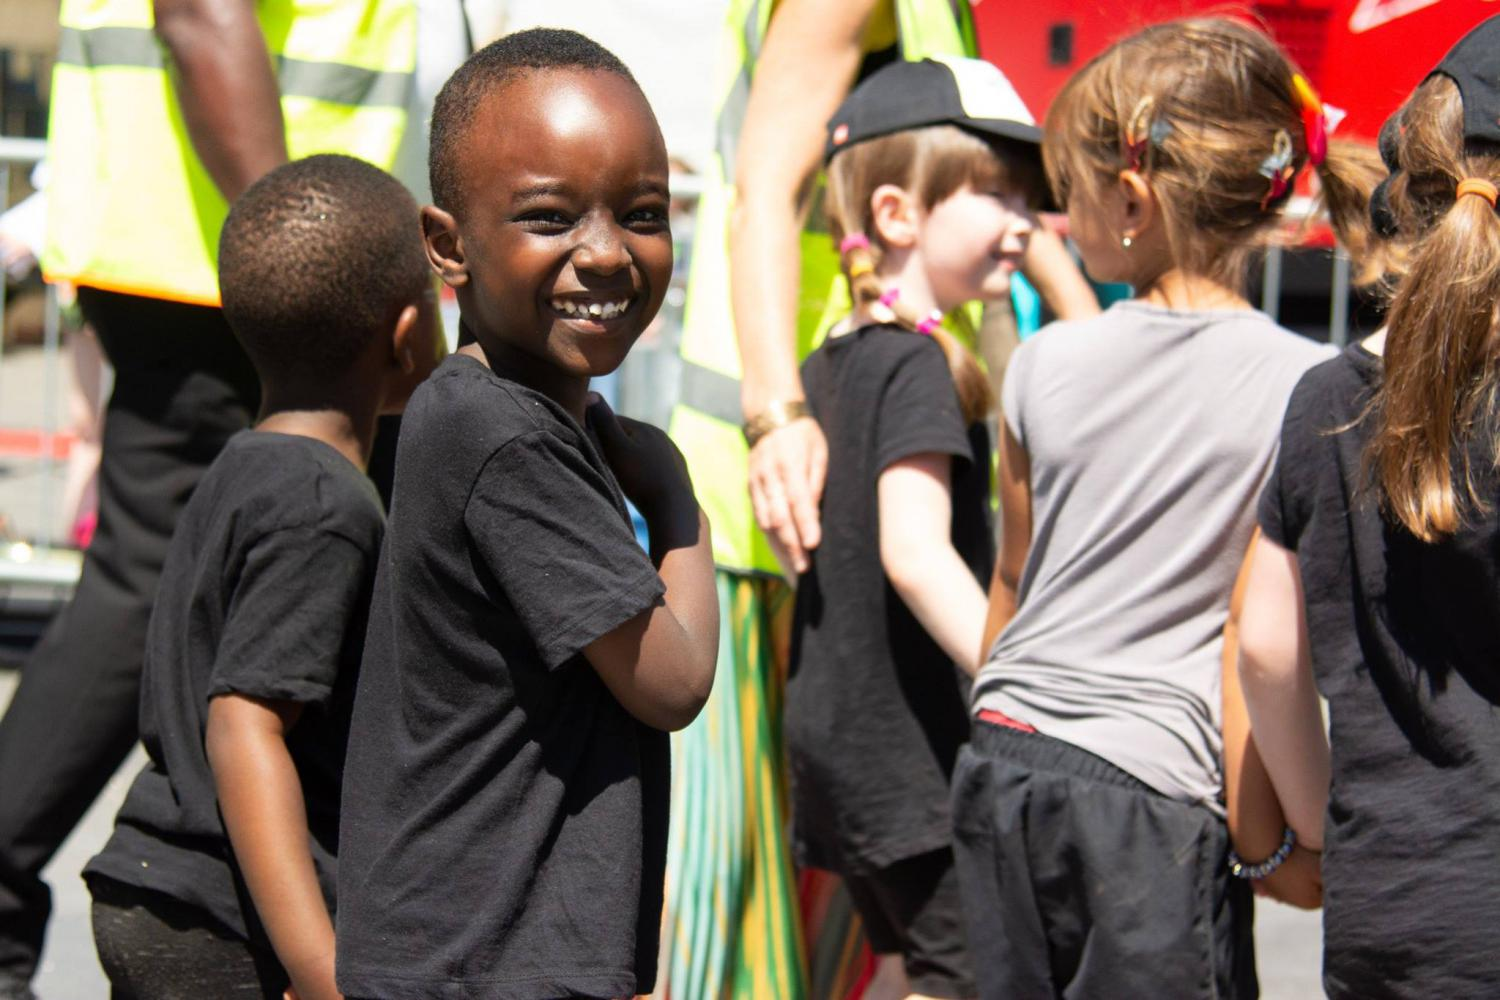 A boy wearing a black t-shirt smiles in the parade at the Greenwich Get Together